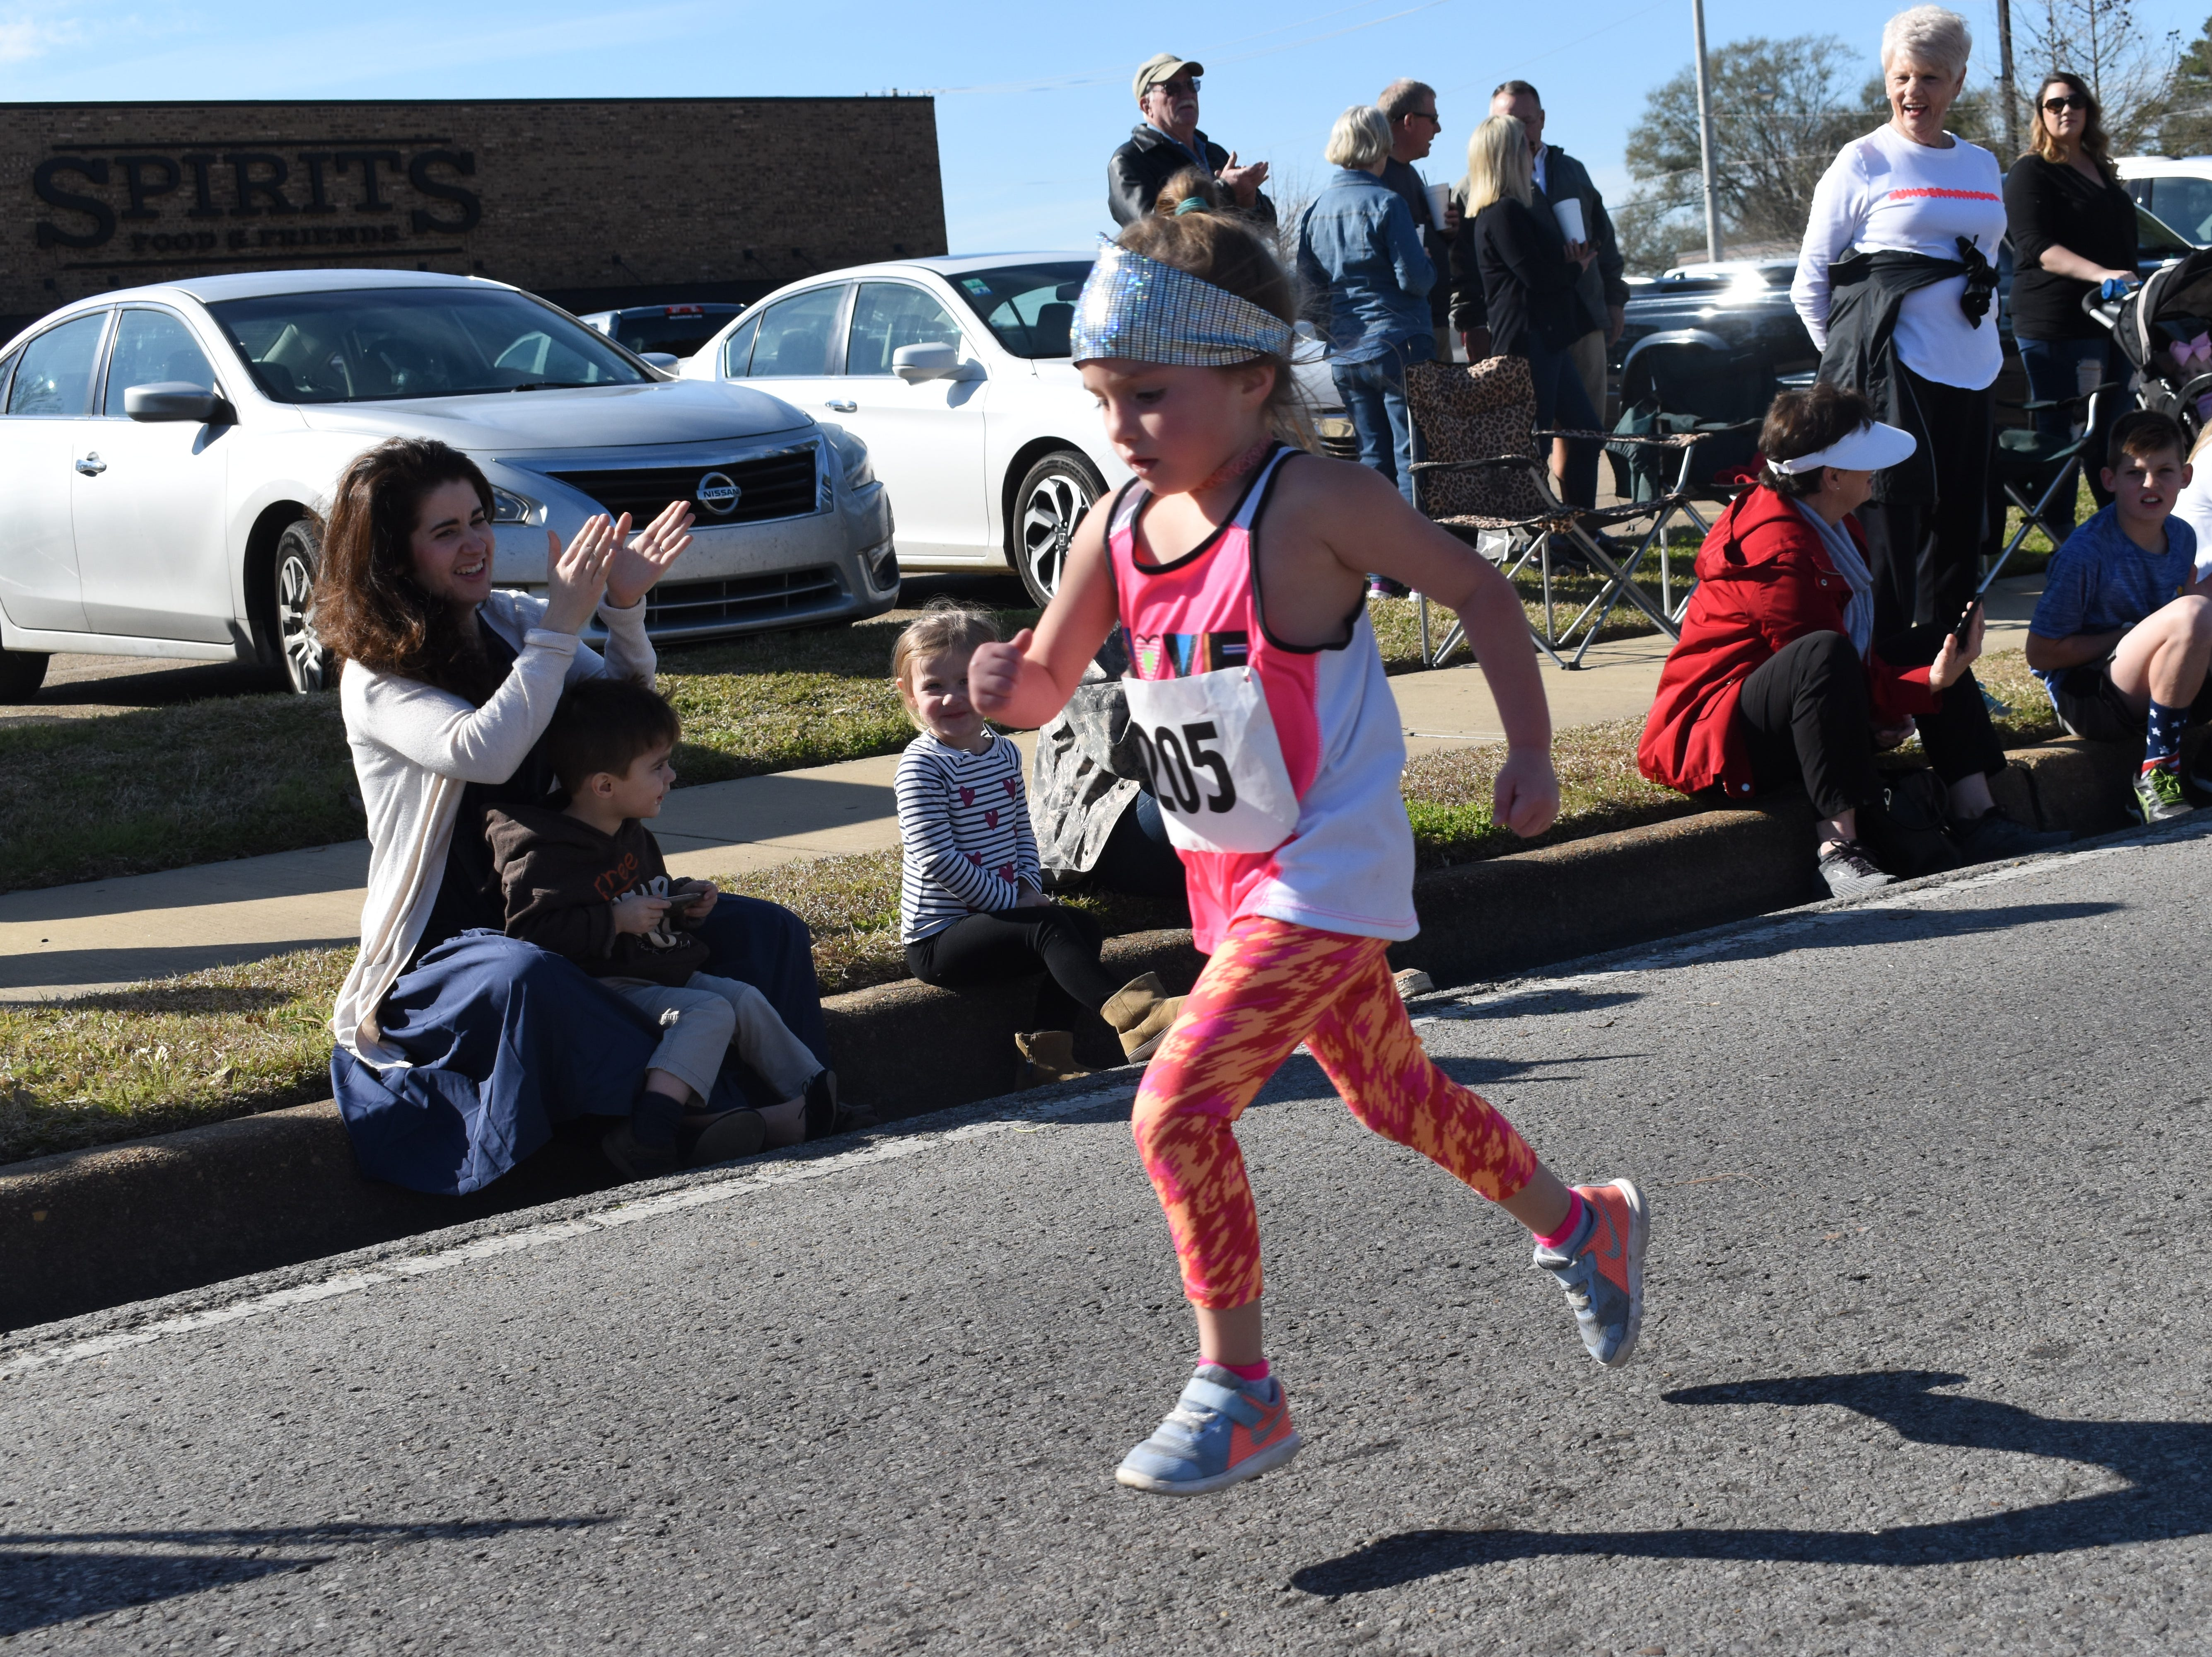 Over 212 runners participated in the 19th annual Spirits 5K and 1-mile Fun Run benefitting the Manna House Saturday, Jan. 26, 2019. About 75 runners participated in a new event held this year - the Beer Run. Runners had to drink four beers and sprint to the finish line. Proceeds from the runs benefit the Manna House which serves free meals year round to anyone who needs a meal regardless of income. Over 200 people a day are fed. The Manna House opened in 1990 and was the vision of Father Gerad Foley.